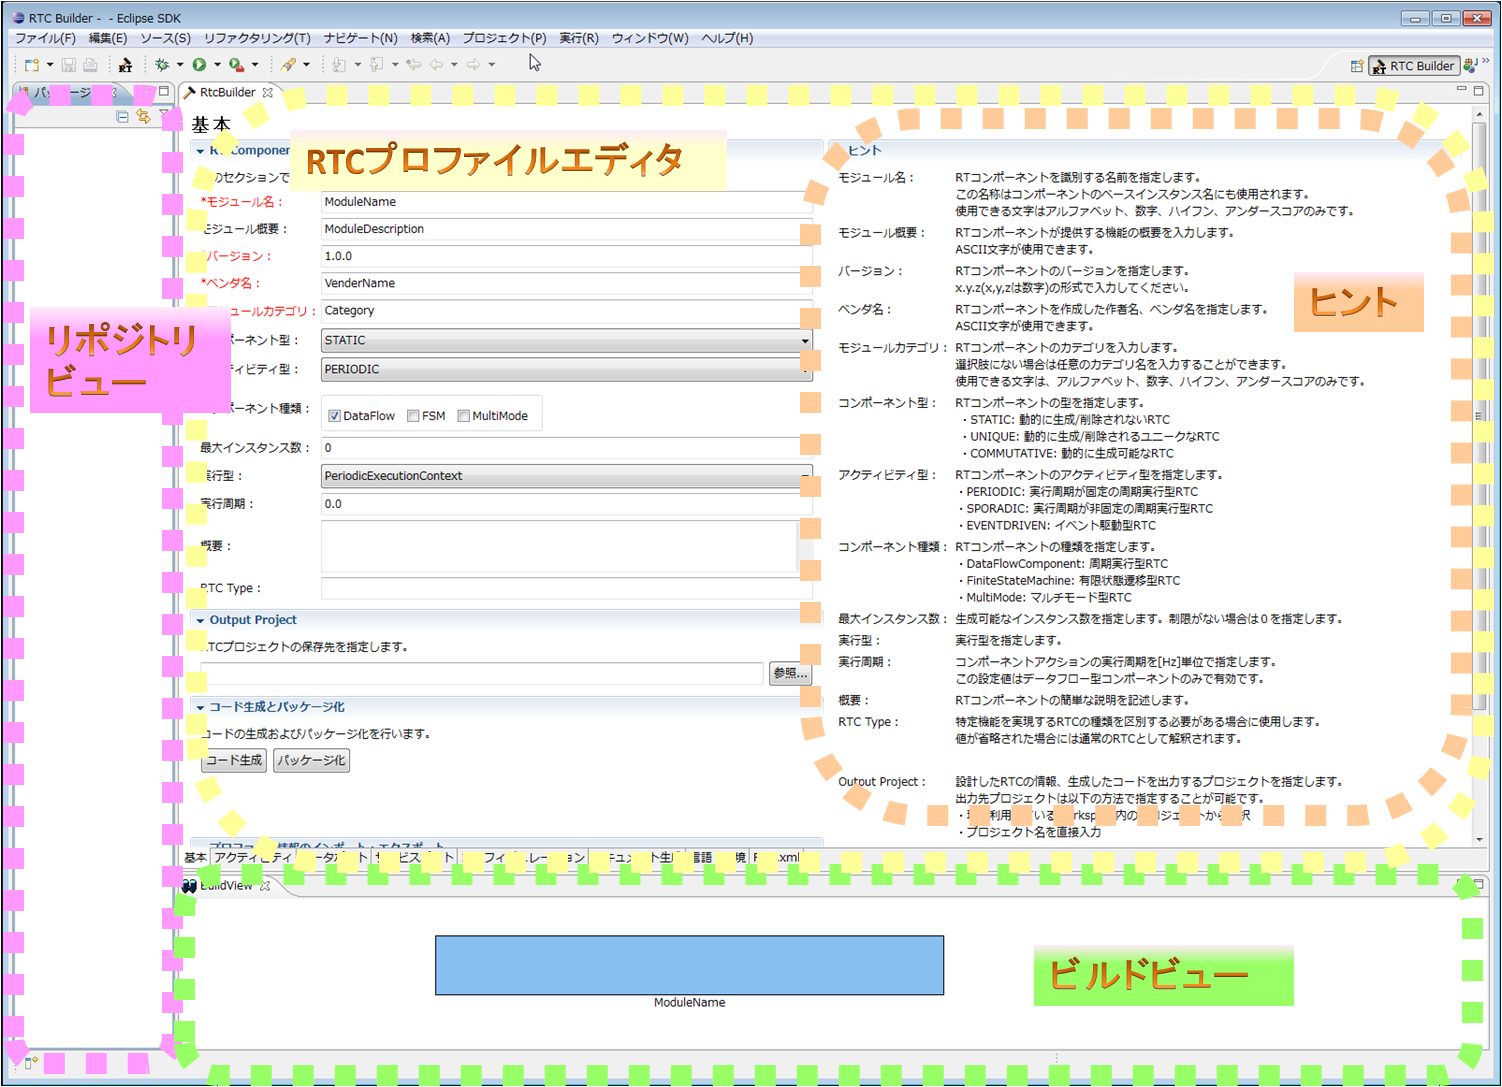 fig3-1RTCBuilder_1.0.0_ja.png